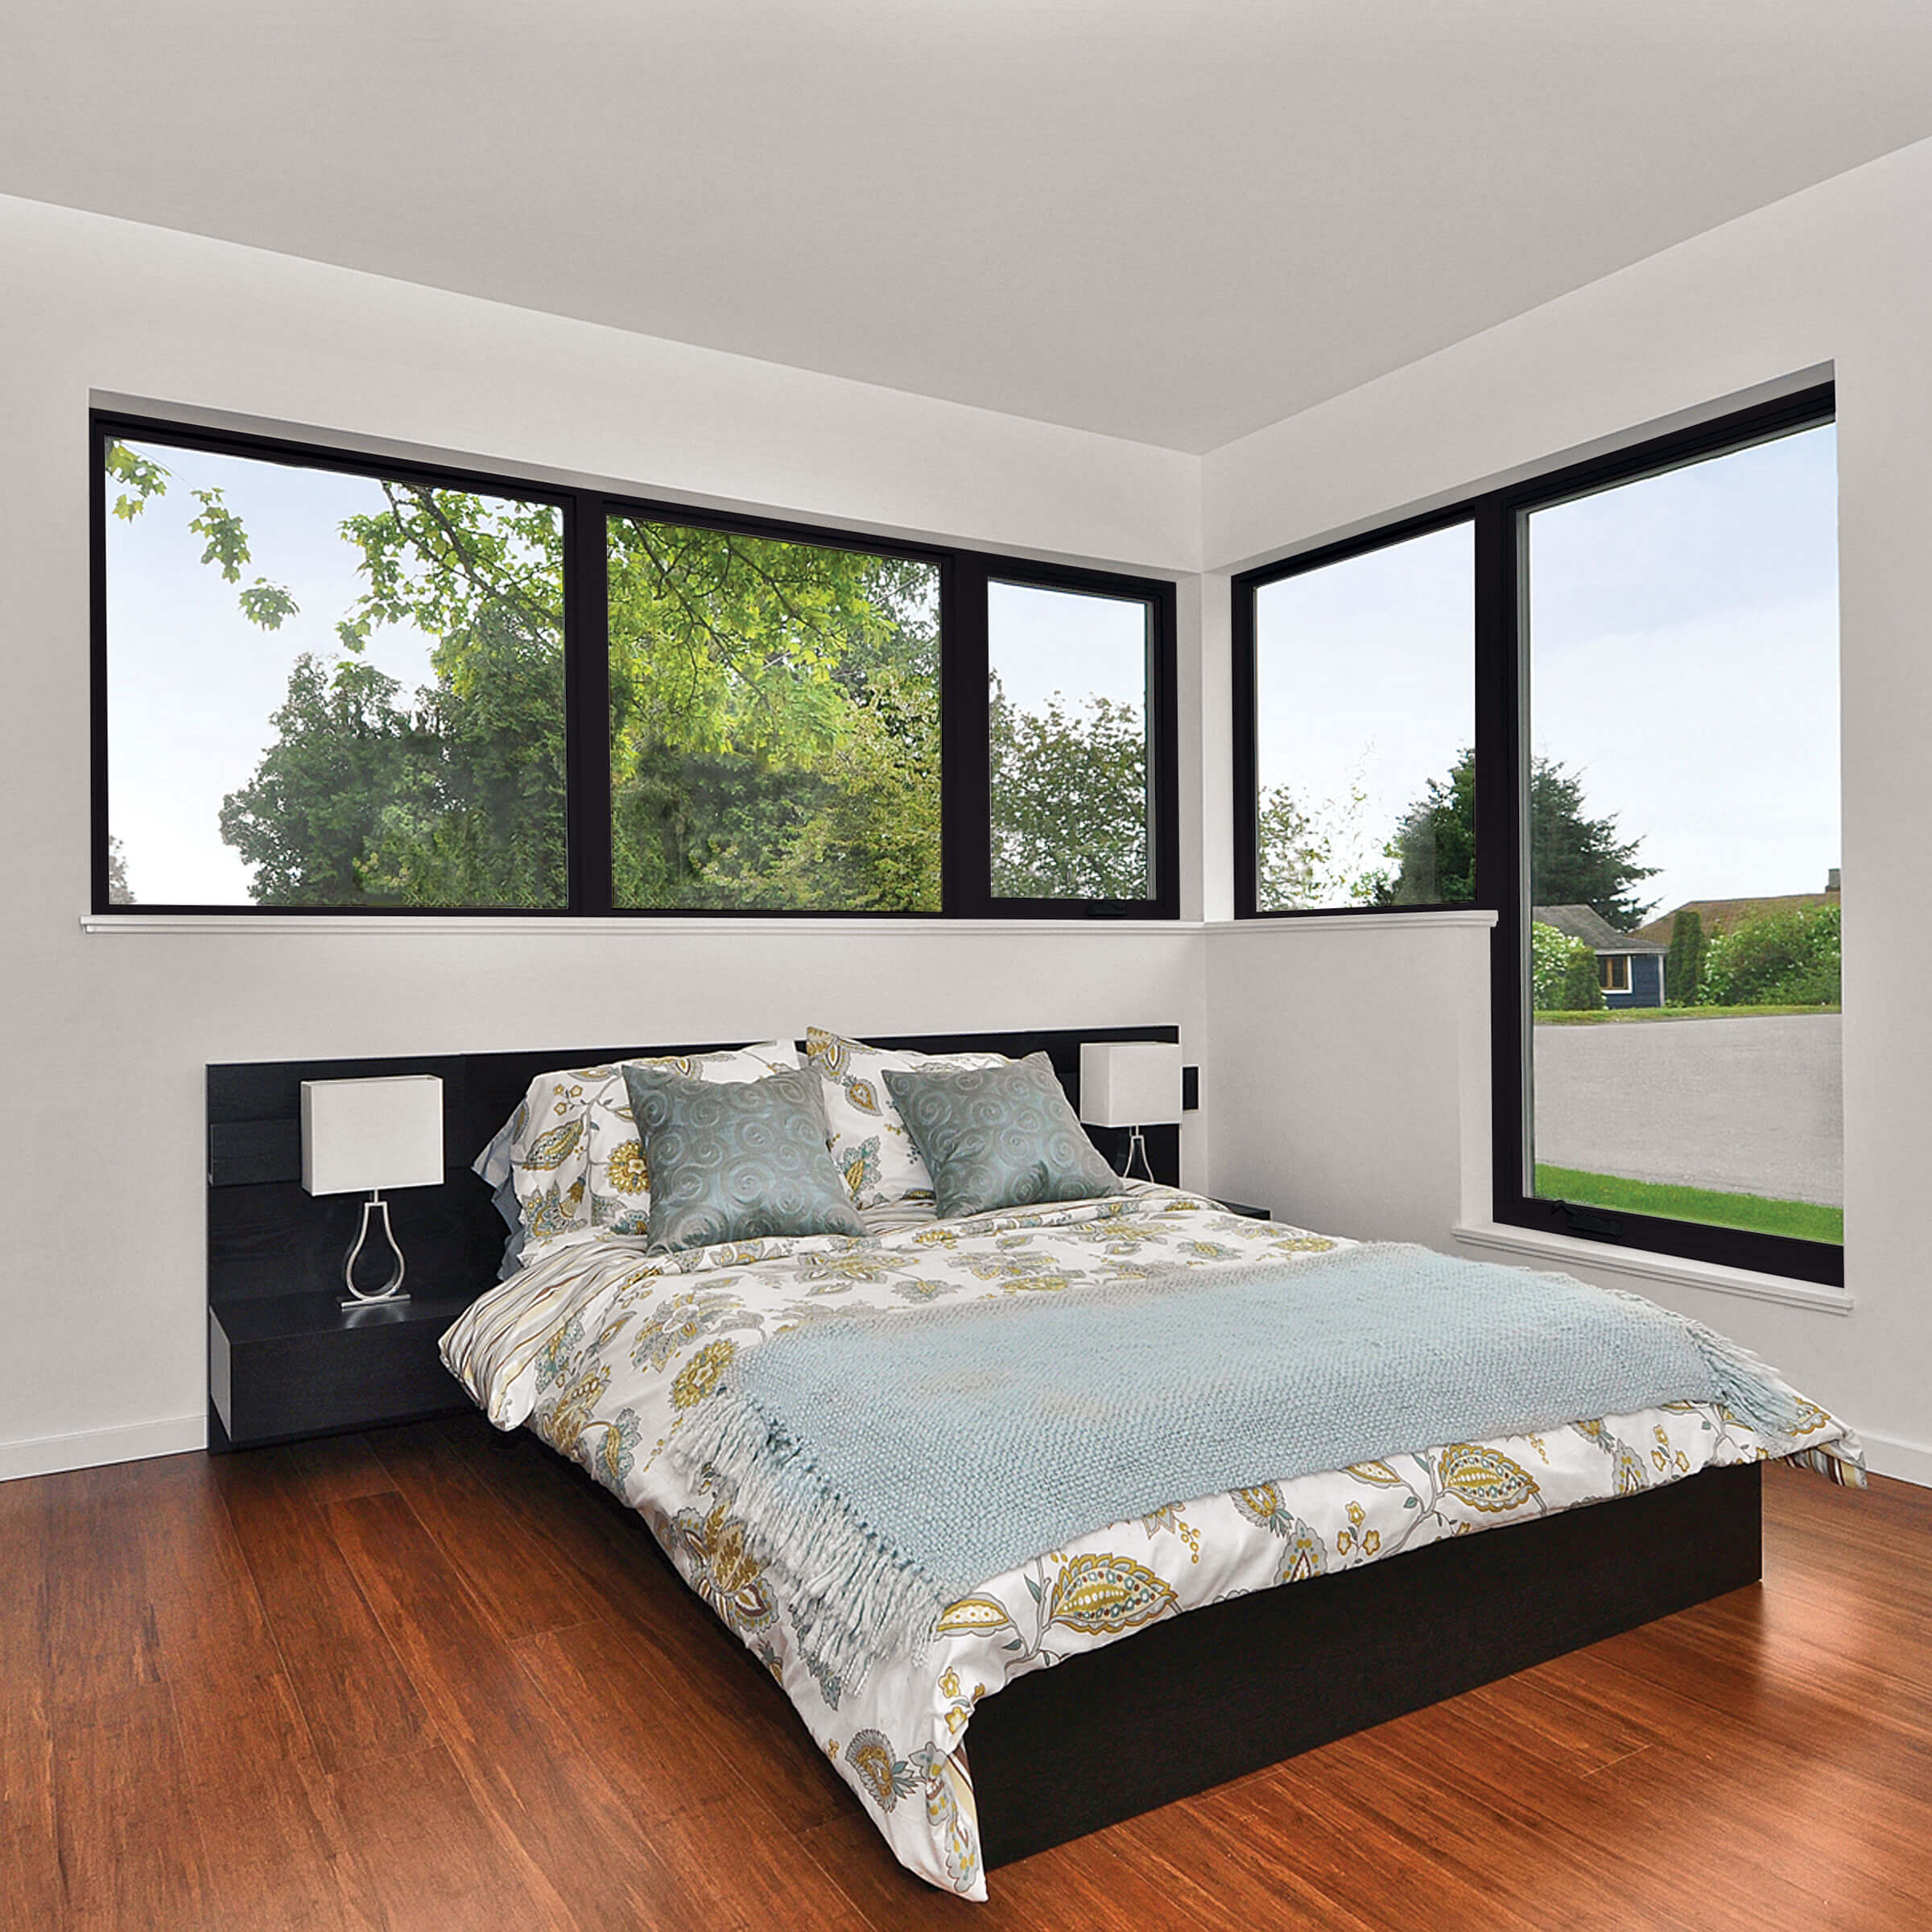 Bedroom With Marvin Essential Picture Windows In Ebony